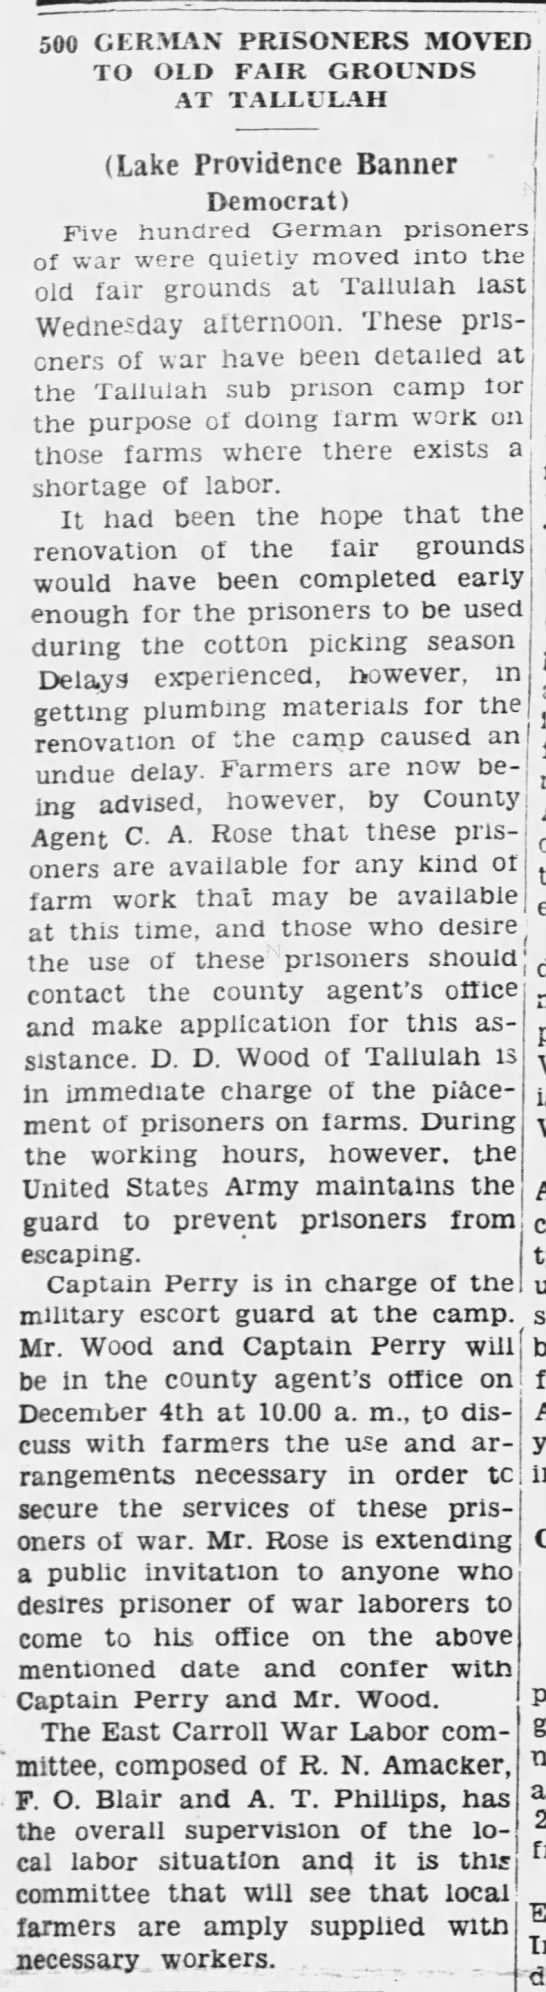 500 German Prisoners Moved to Old Fair Grounds at Tallulah -